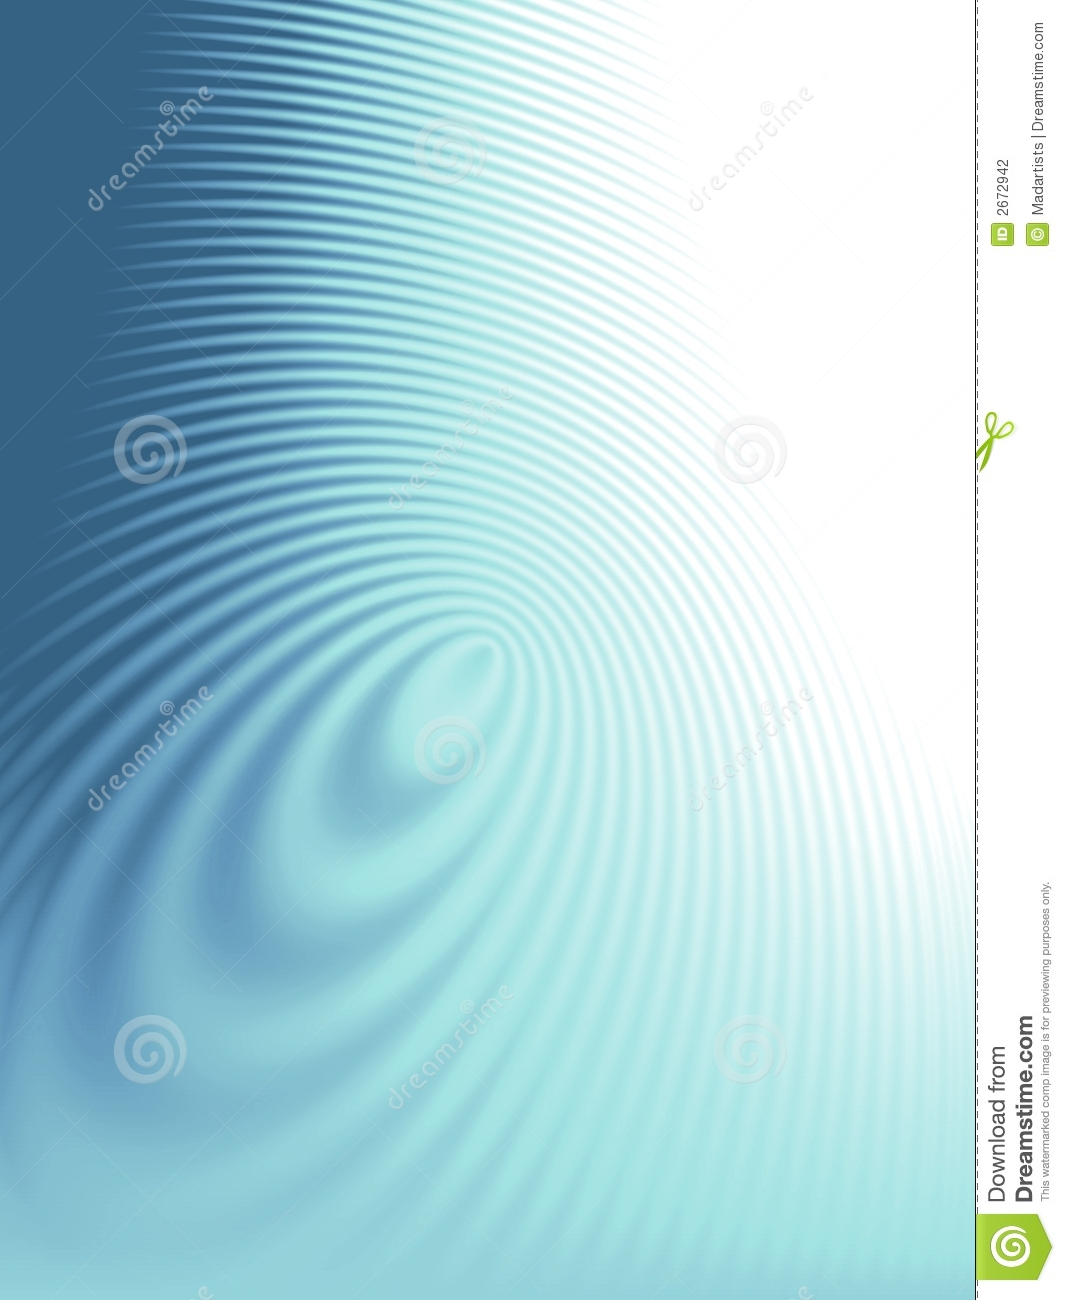 Ripples Waves Texture Blue